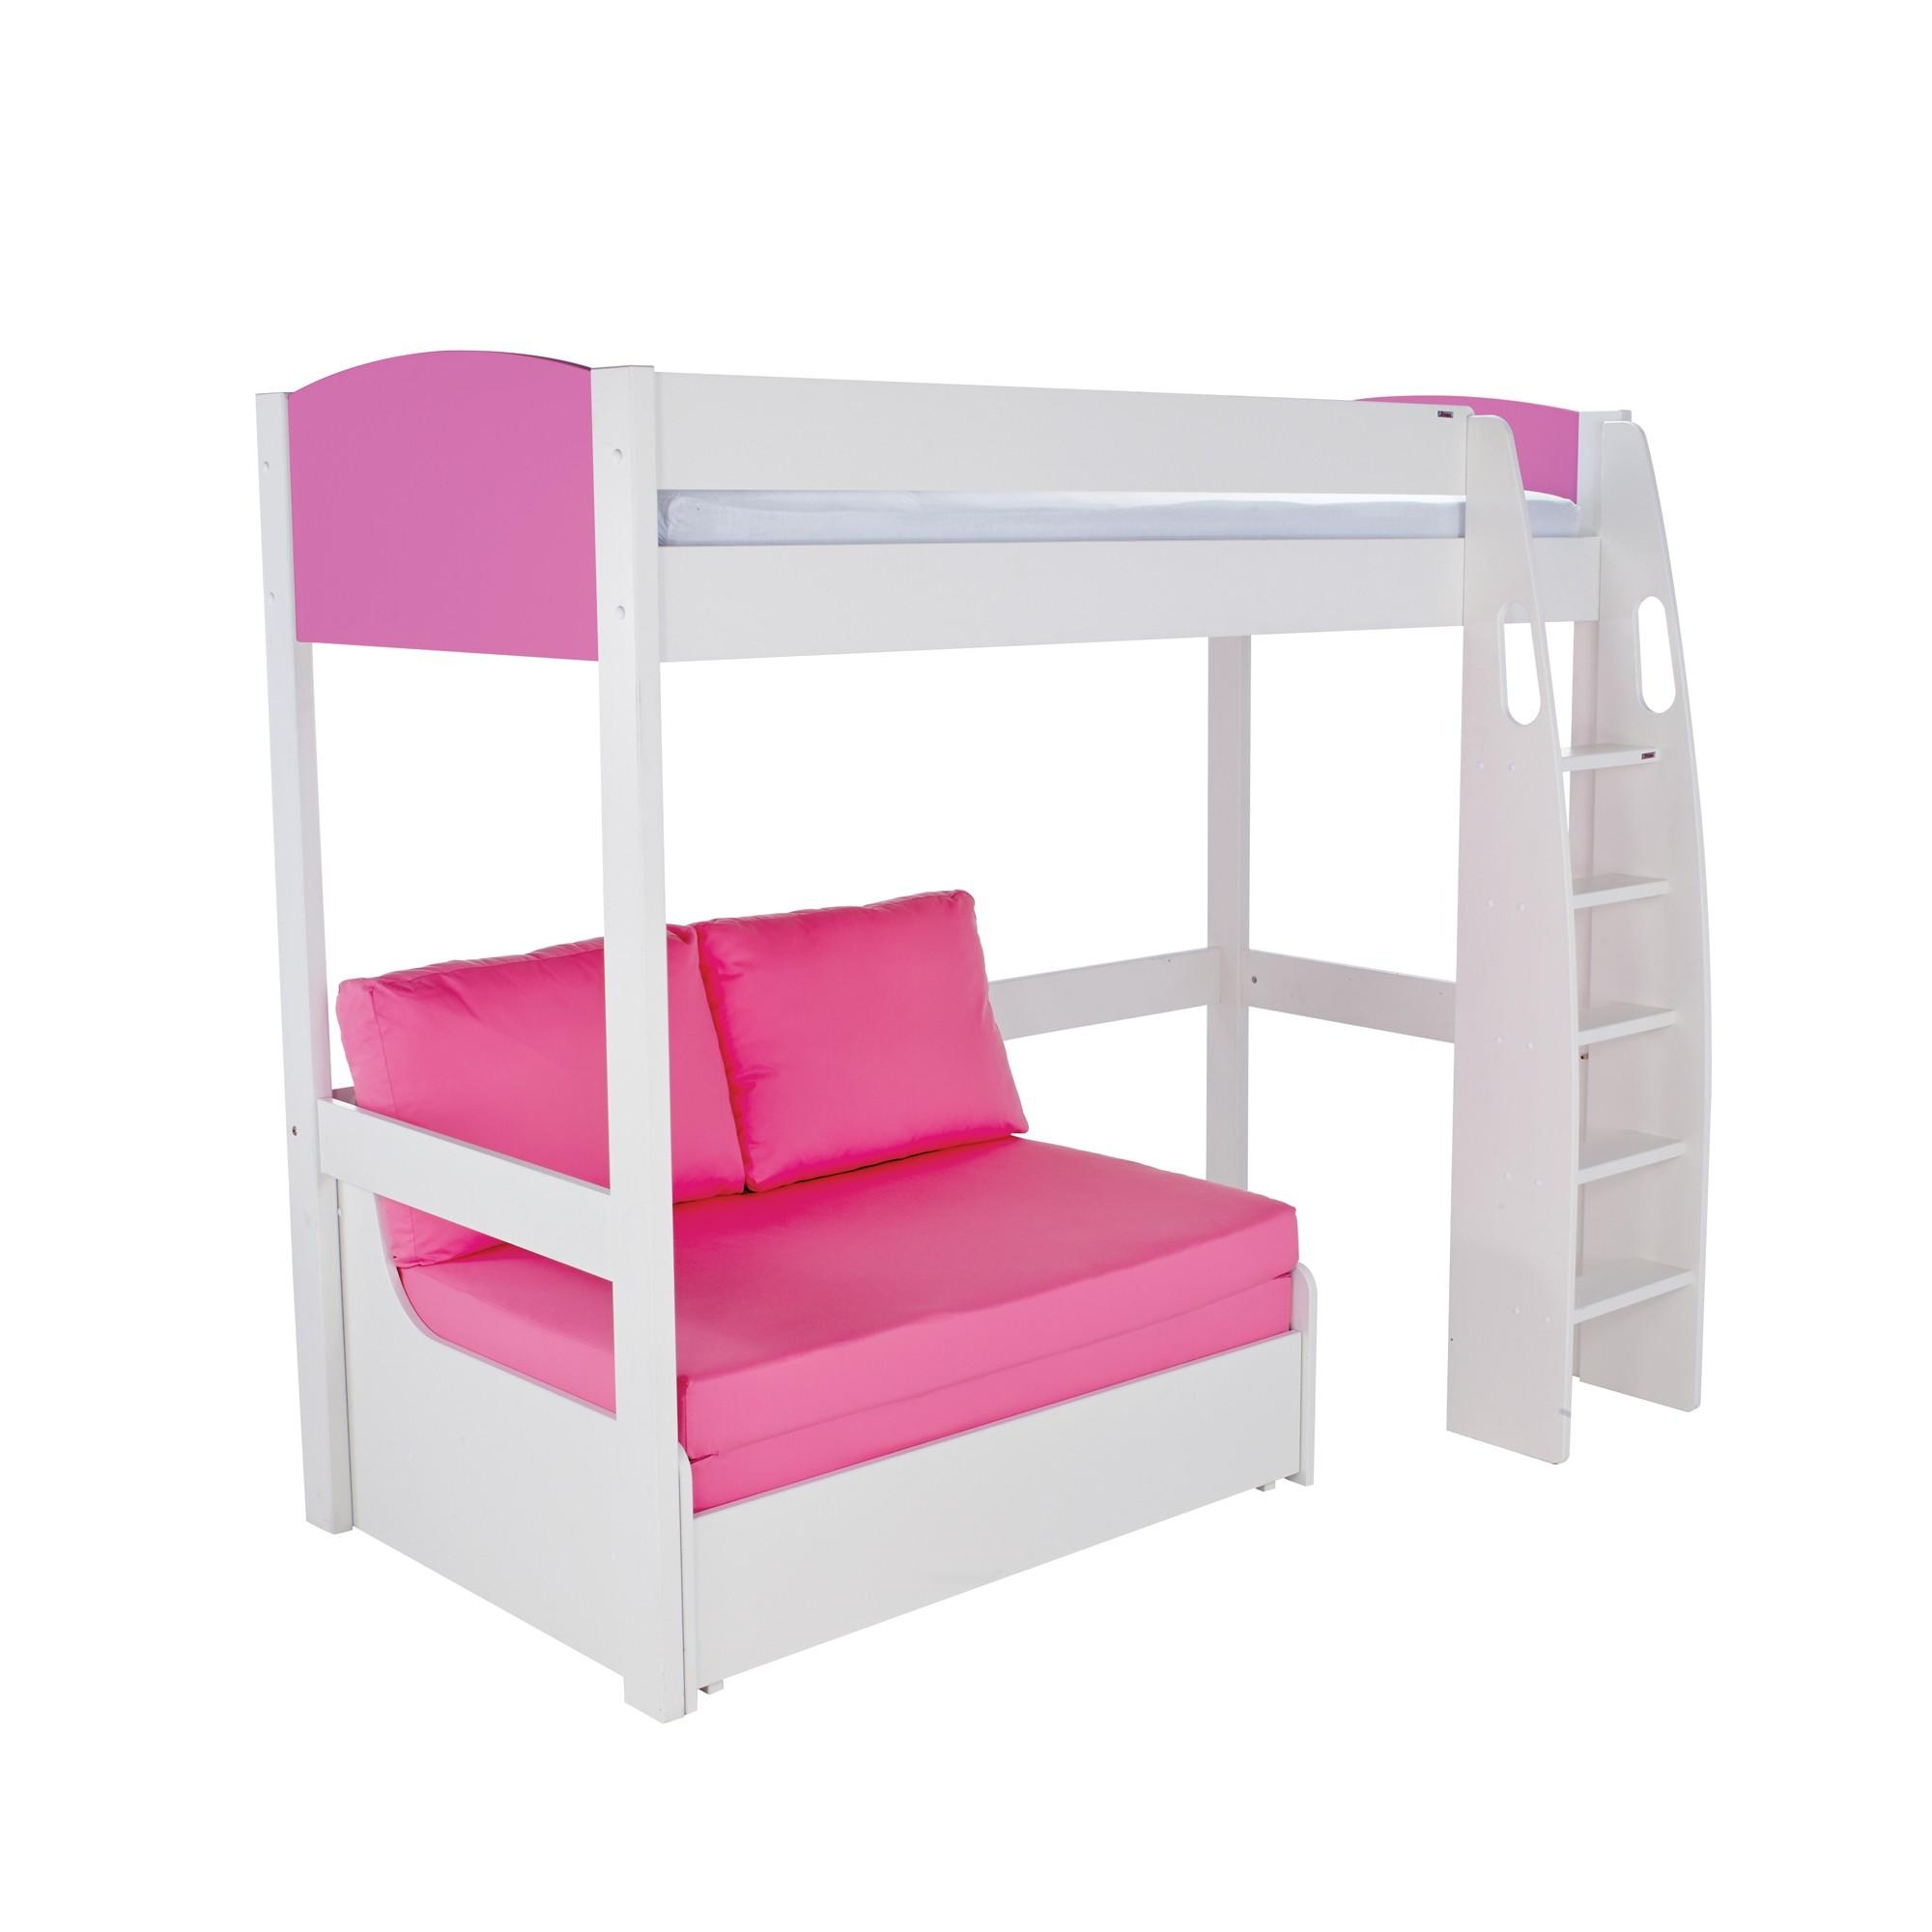 Stompa Duo High Sleeper And Sofa Bed – Highsleeper – Cookes Furniture In High Sleeper Bed With Sofa (View 13 of 20)